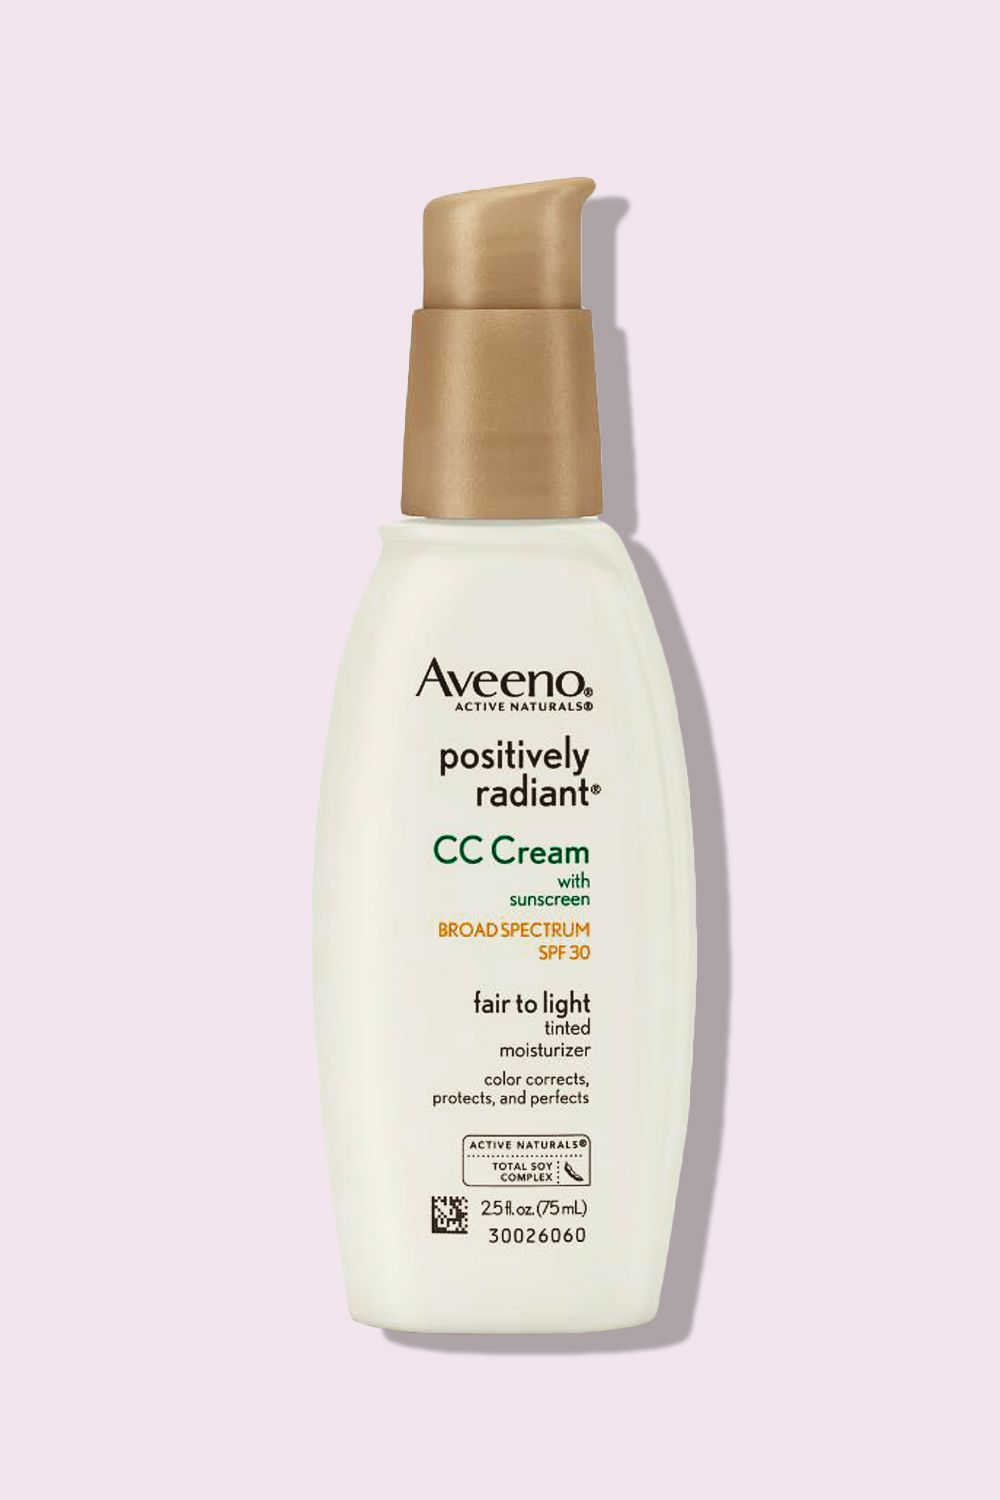 "<p>You can't talk CC creams without including this cult-favorite from Aveeno: Filled with brightening soybean extract and hydrating glycerin, the light-reflecting formula gives skin a dewy finish without looking or feeling oily.</p><p><i data-redactor-tag=""i"">Aveeno Positively Radiant CC Cream SPF 30, $13</i></p><p><strong data-redactor-tag=""strong"">BUY IT: <a href=""https://www.amazon.com/Aveeno-Positively-Radiant-Spectrum-Correction/dp/B003O7IBUW?th=1"">amazon.com</a>.</strong></p>"